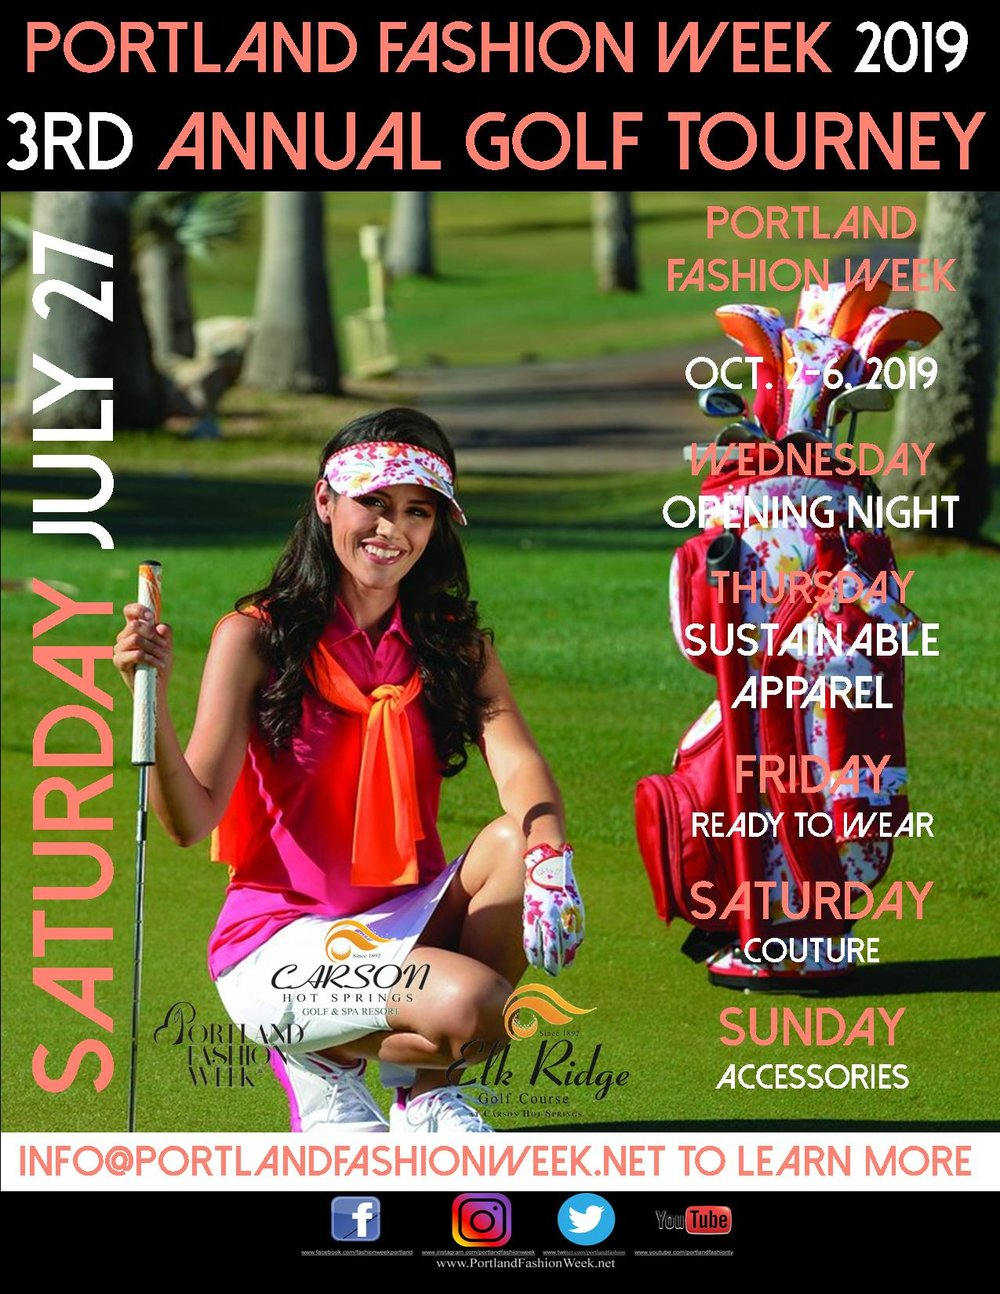 """Teams are forming now! - Sponsor a hole, form a team, or just come out to support a good cause while enjoying the beautiful links, gorgeous Columbia River Gorge views and lunch in the Clubhouse with our famous """"Portland Fashion Week Bloody Mary Bar""""!Our shotgun start and over $125,000.00 in cash and prizes since 2017 including a 1954 Jaguar XK 120, $1,000.00 Bounties on Holes in One from the Tee and 4th, and guaranteed prizes for all players make this a very attractive tourney to play in.From Elk Ridge Golf Course in Carson, WA., the region's premier golf course!"""